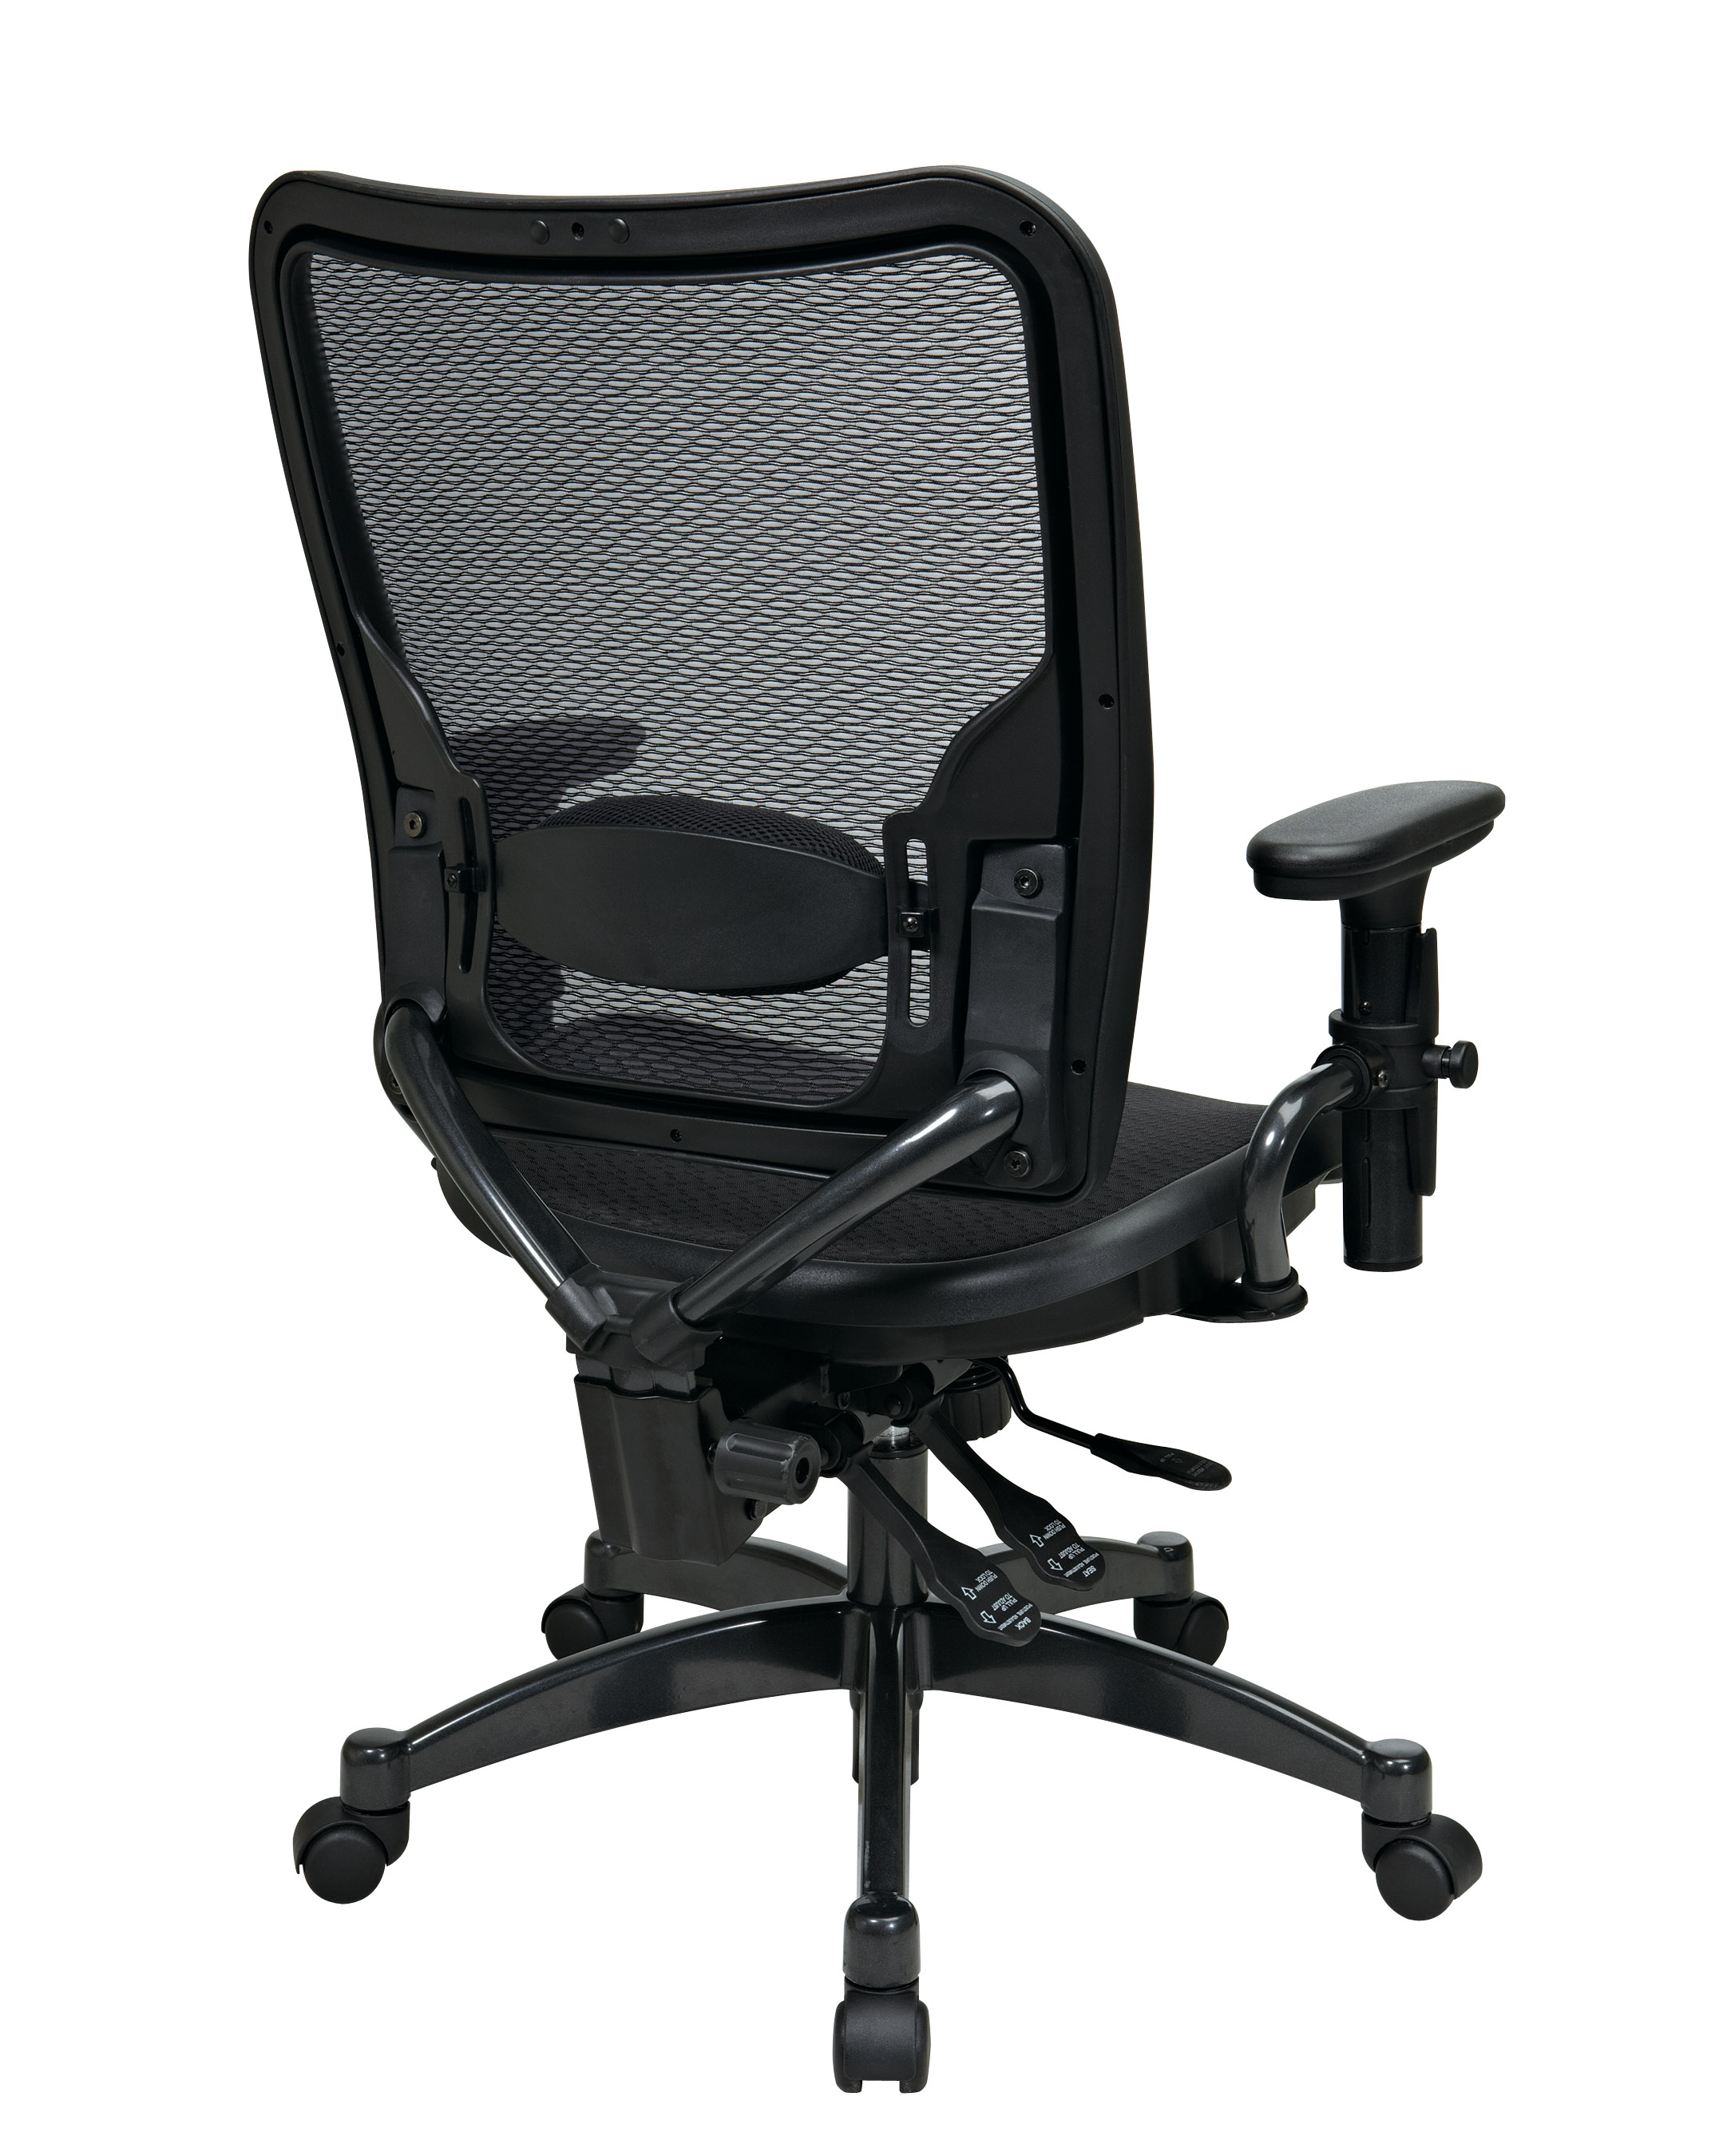 Dual Function Ergonmic Airgrid Chair Back - Professional Dual Function Ergonomics AirGrid Chair